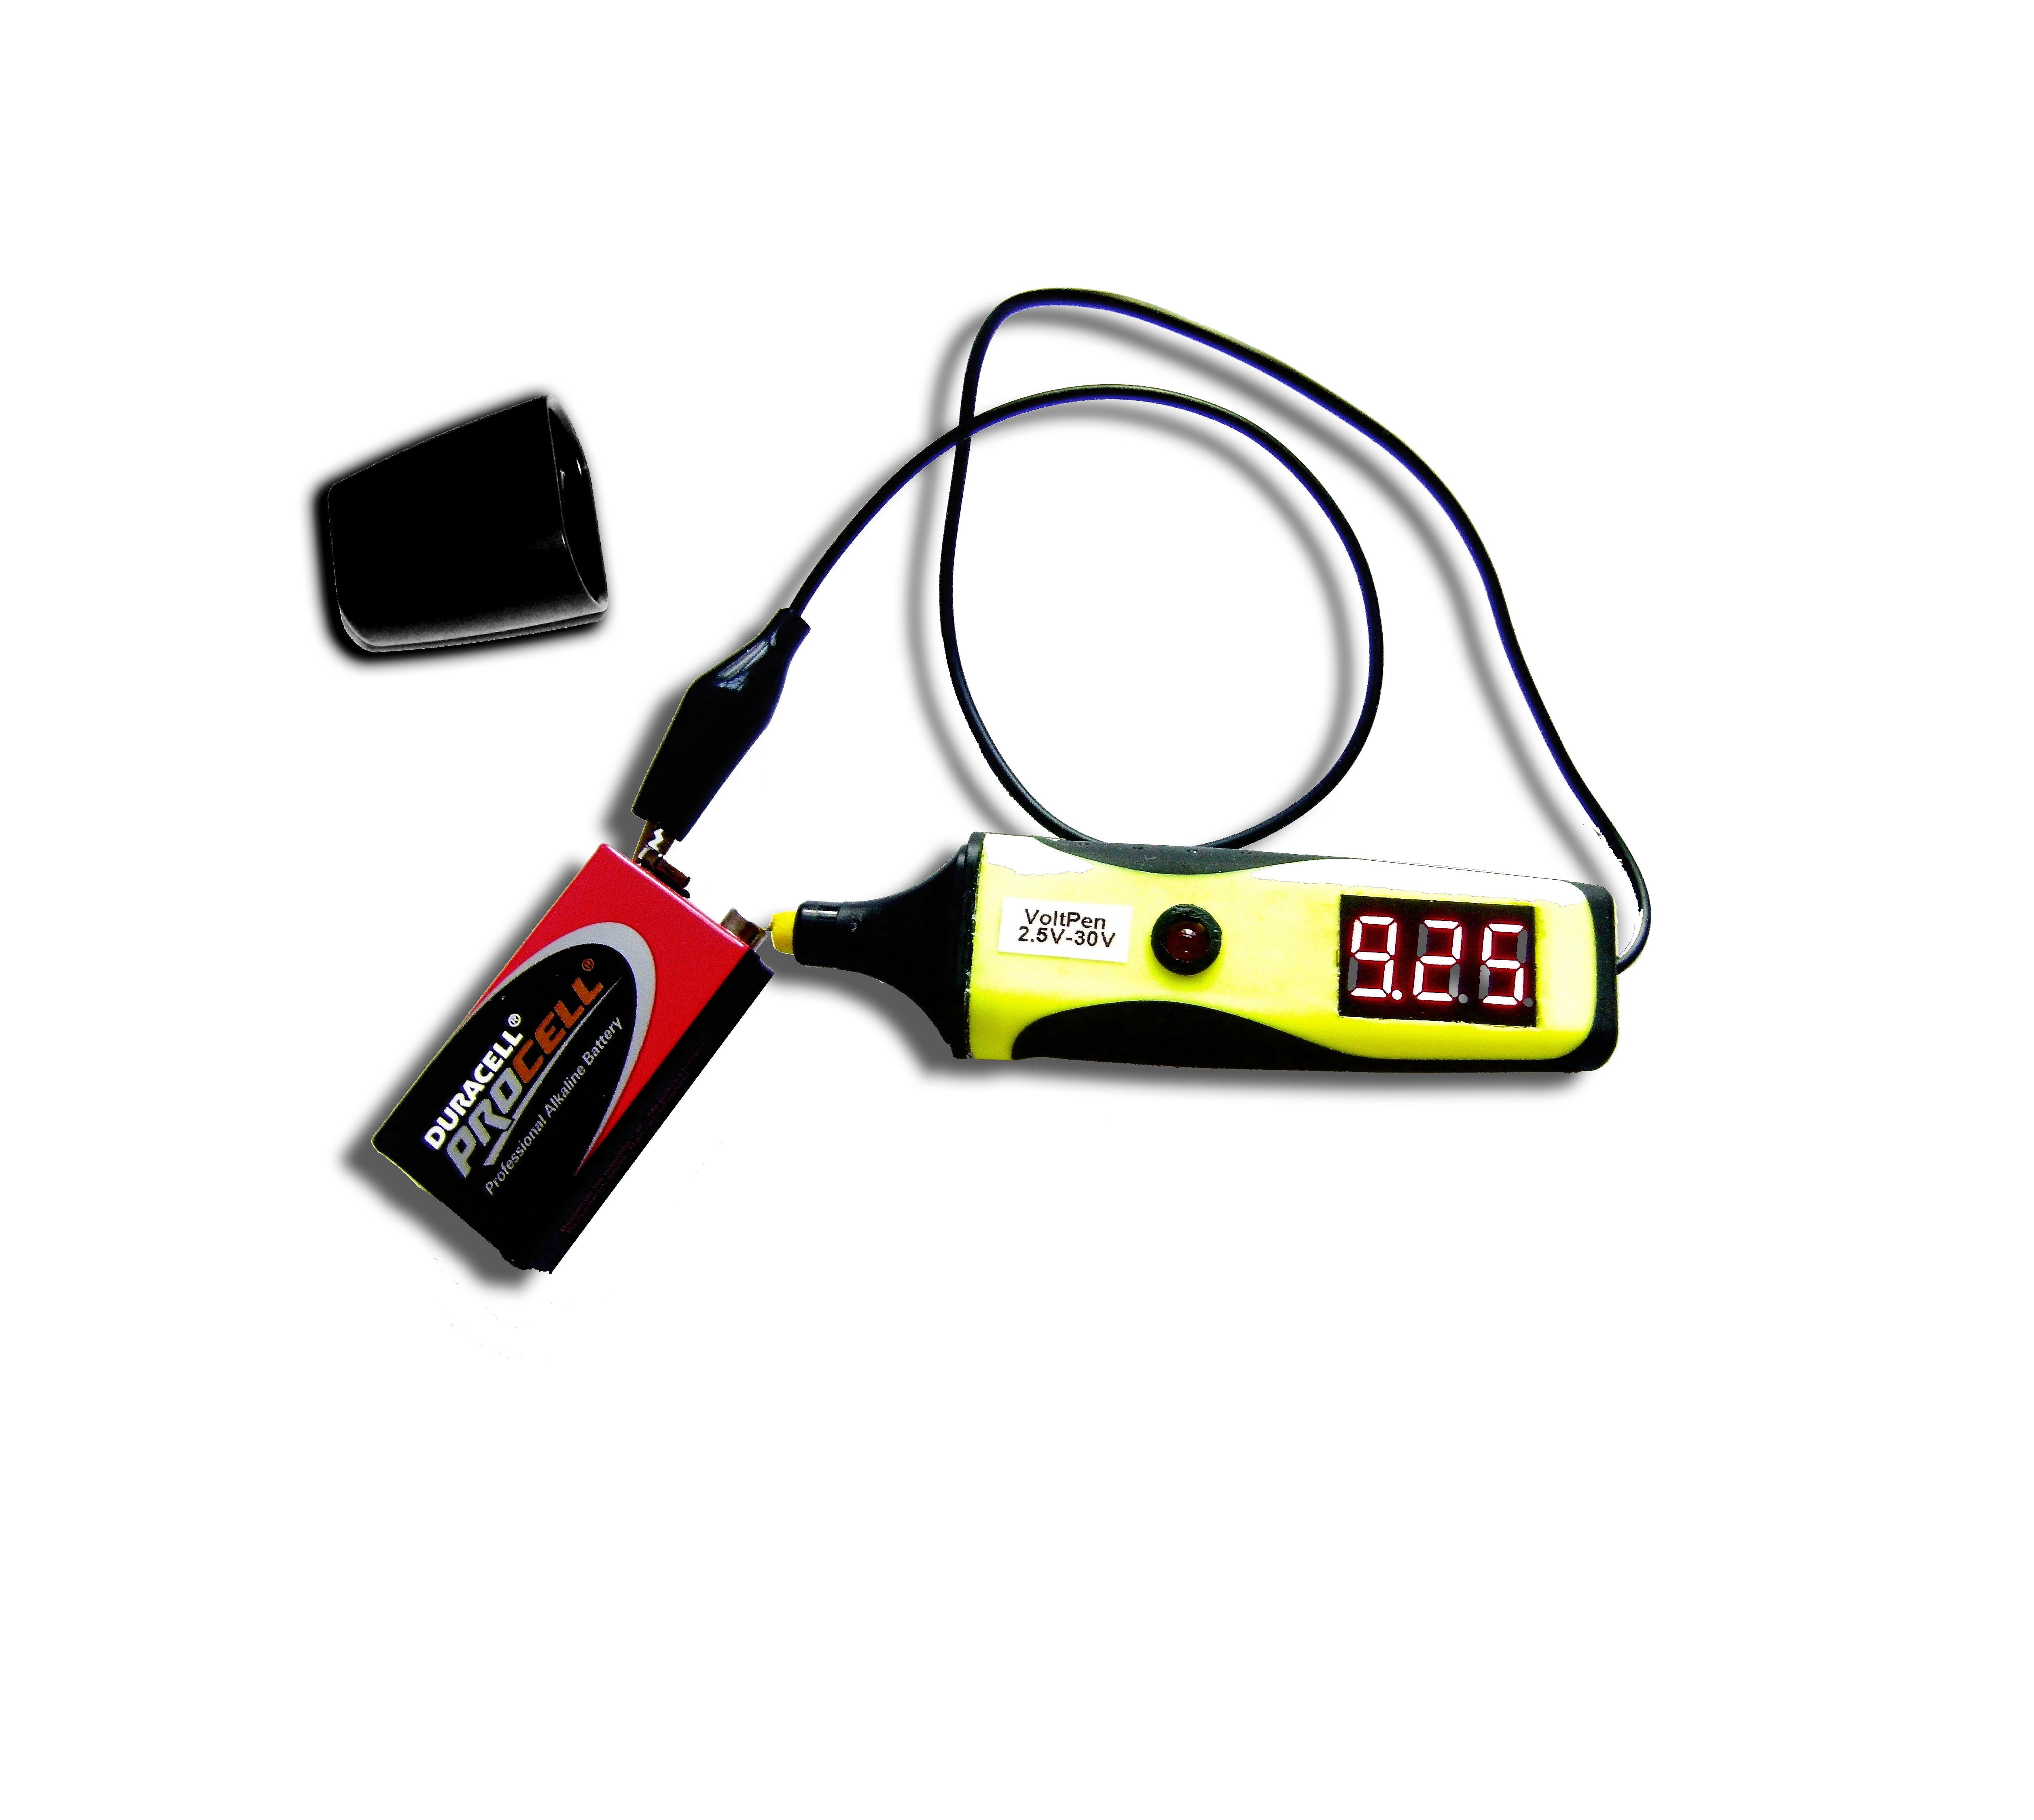 Picture of The VoltPen (Highlighter Into Voltmeter)